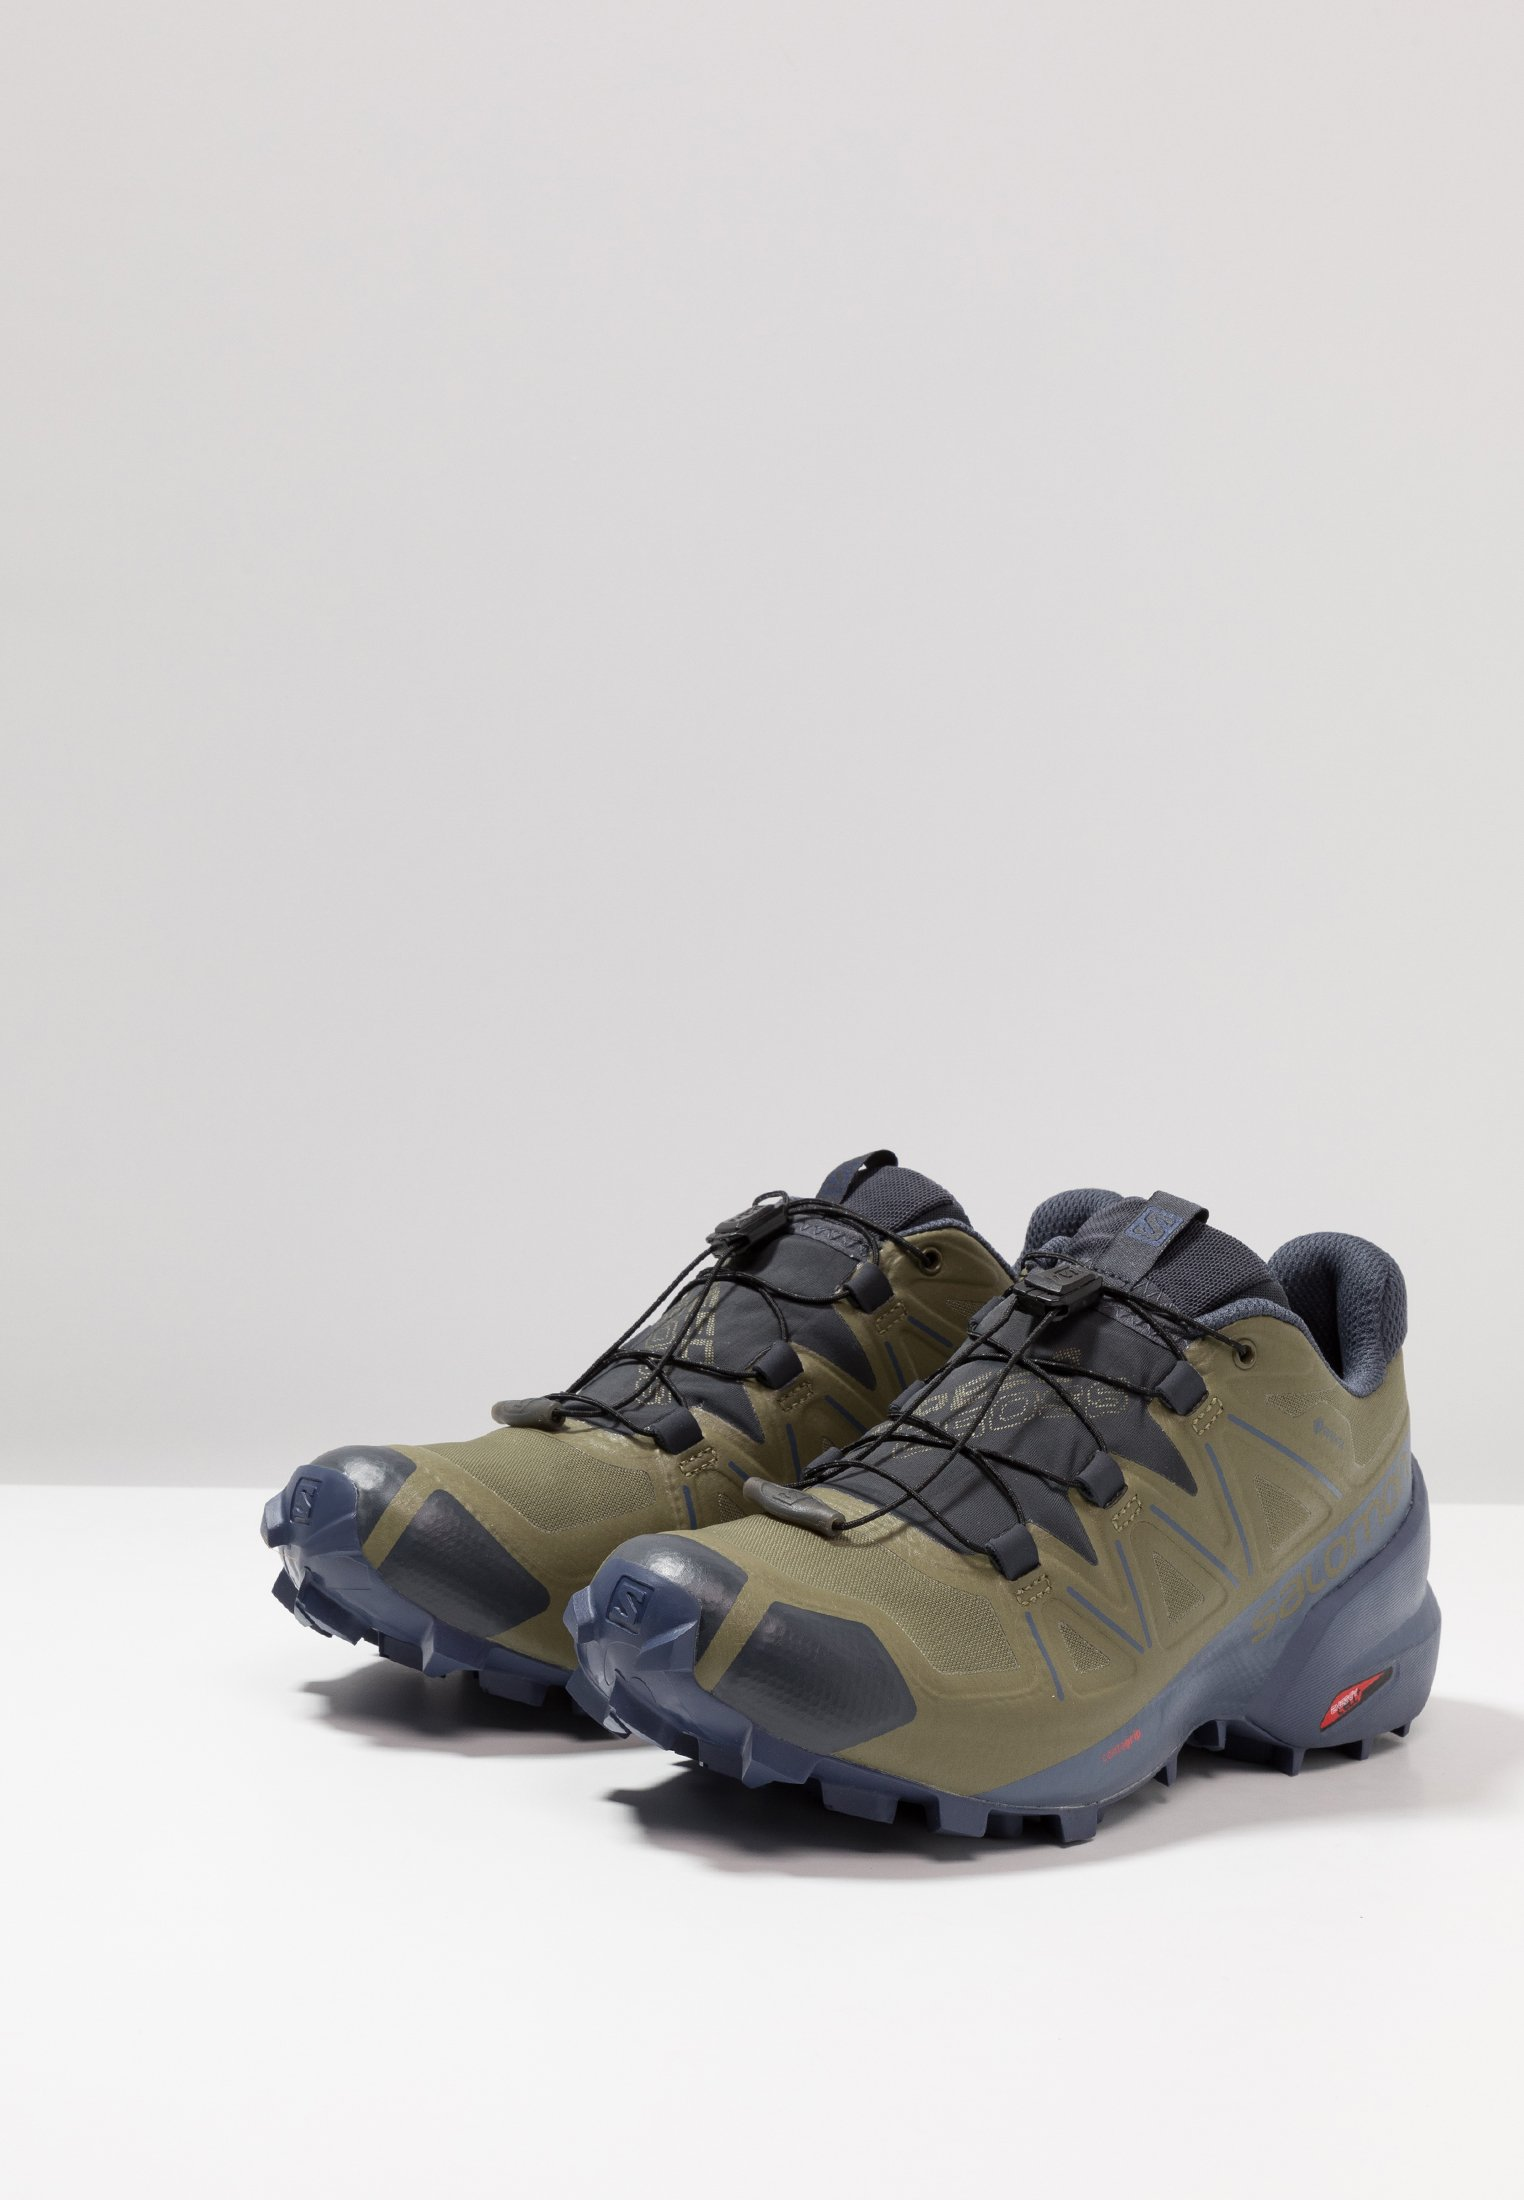 Salomon Speedcross 5 Gtx - Chaussures De Running Burnt Olive/crown Blue/india Ink